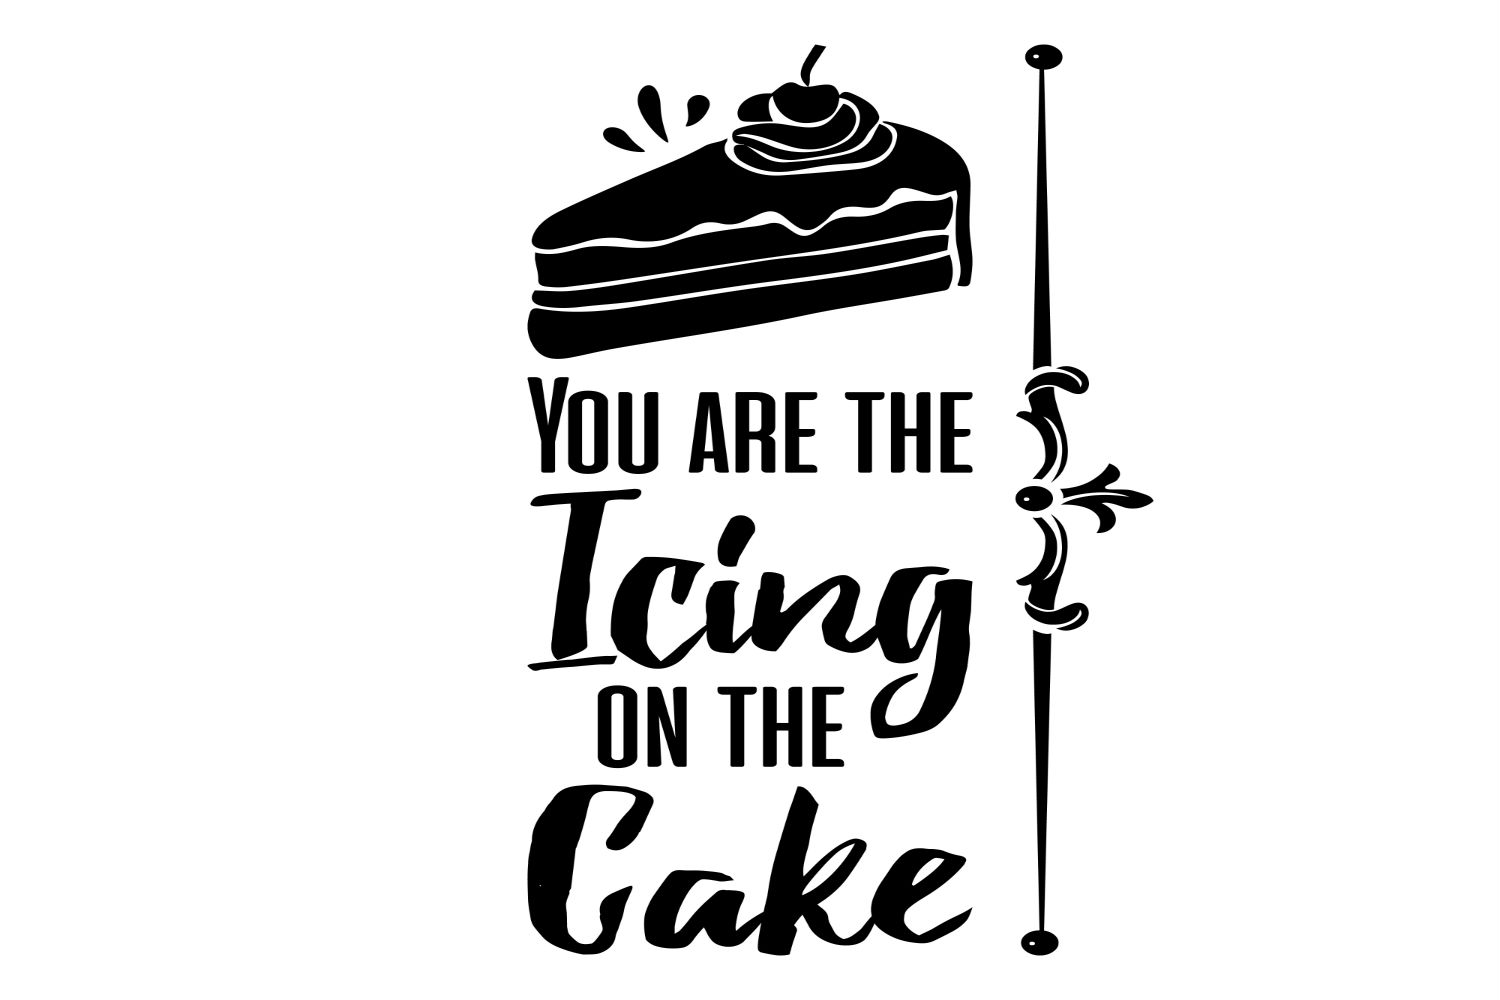 Download Free You Are The Icing On The Cake Graphic By Summerssvg Creative for Cricut Explore, Silhouette and other cutting machines.